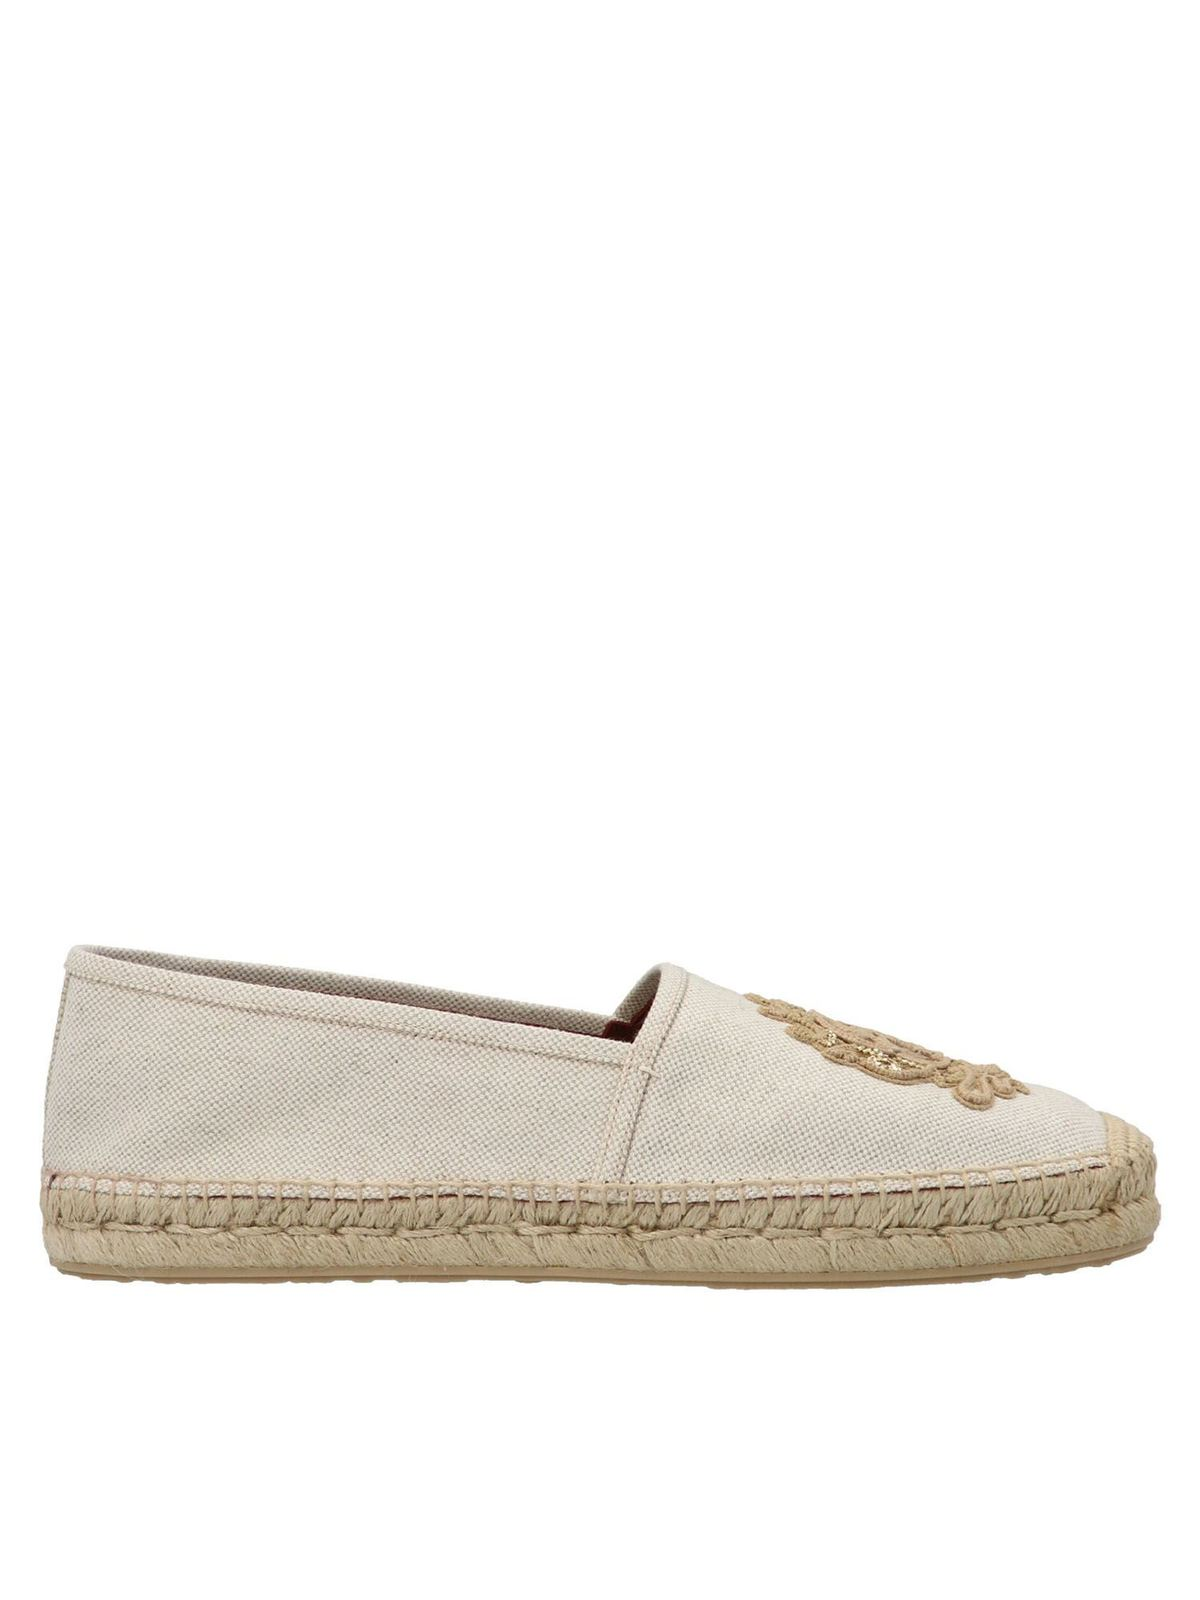 Dolce & Gabbana Canvases EMBROIDERY ESPADRILLES IN NATURAL COLOR